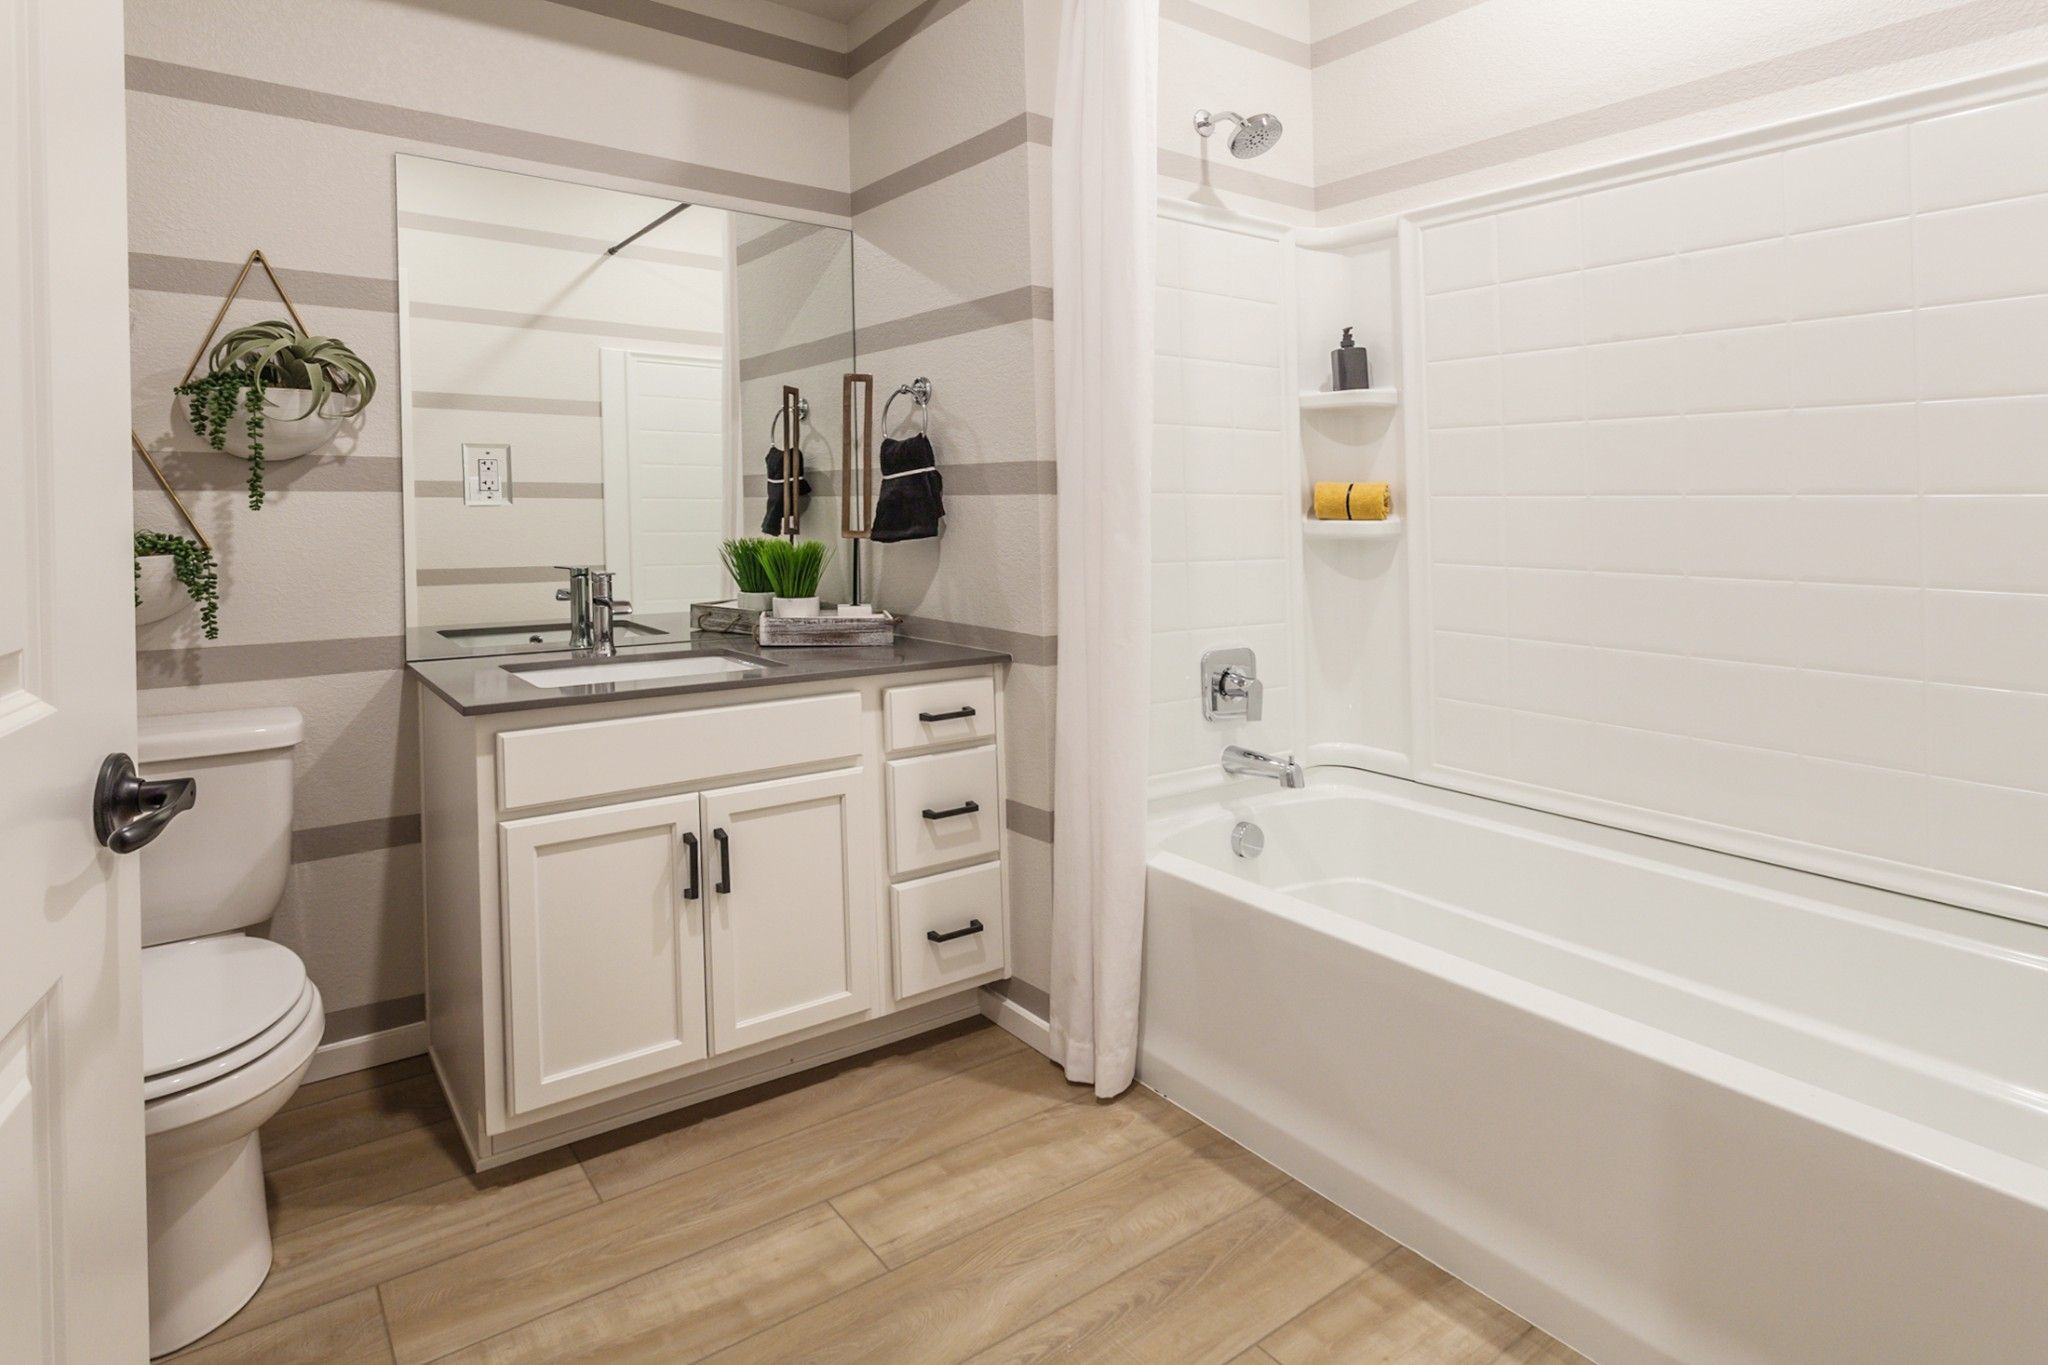 Bathroom featured in The Morgan By Hartford Homes in Fort Collins-Loveland, CO